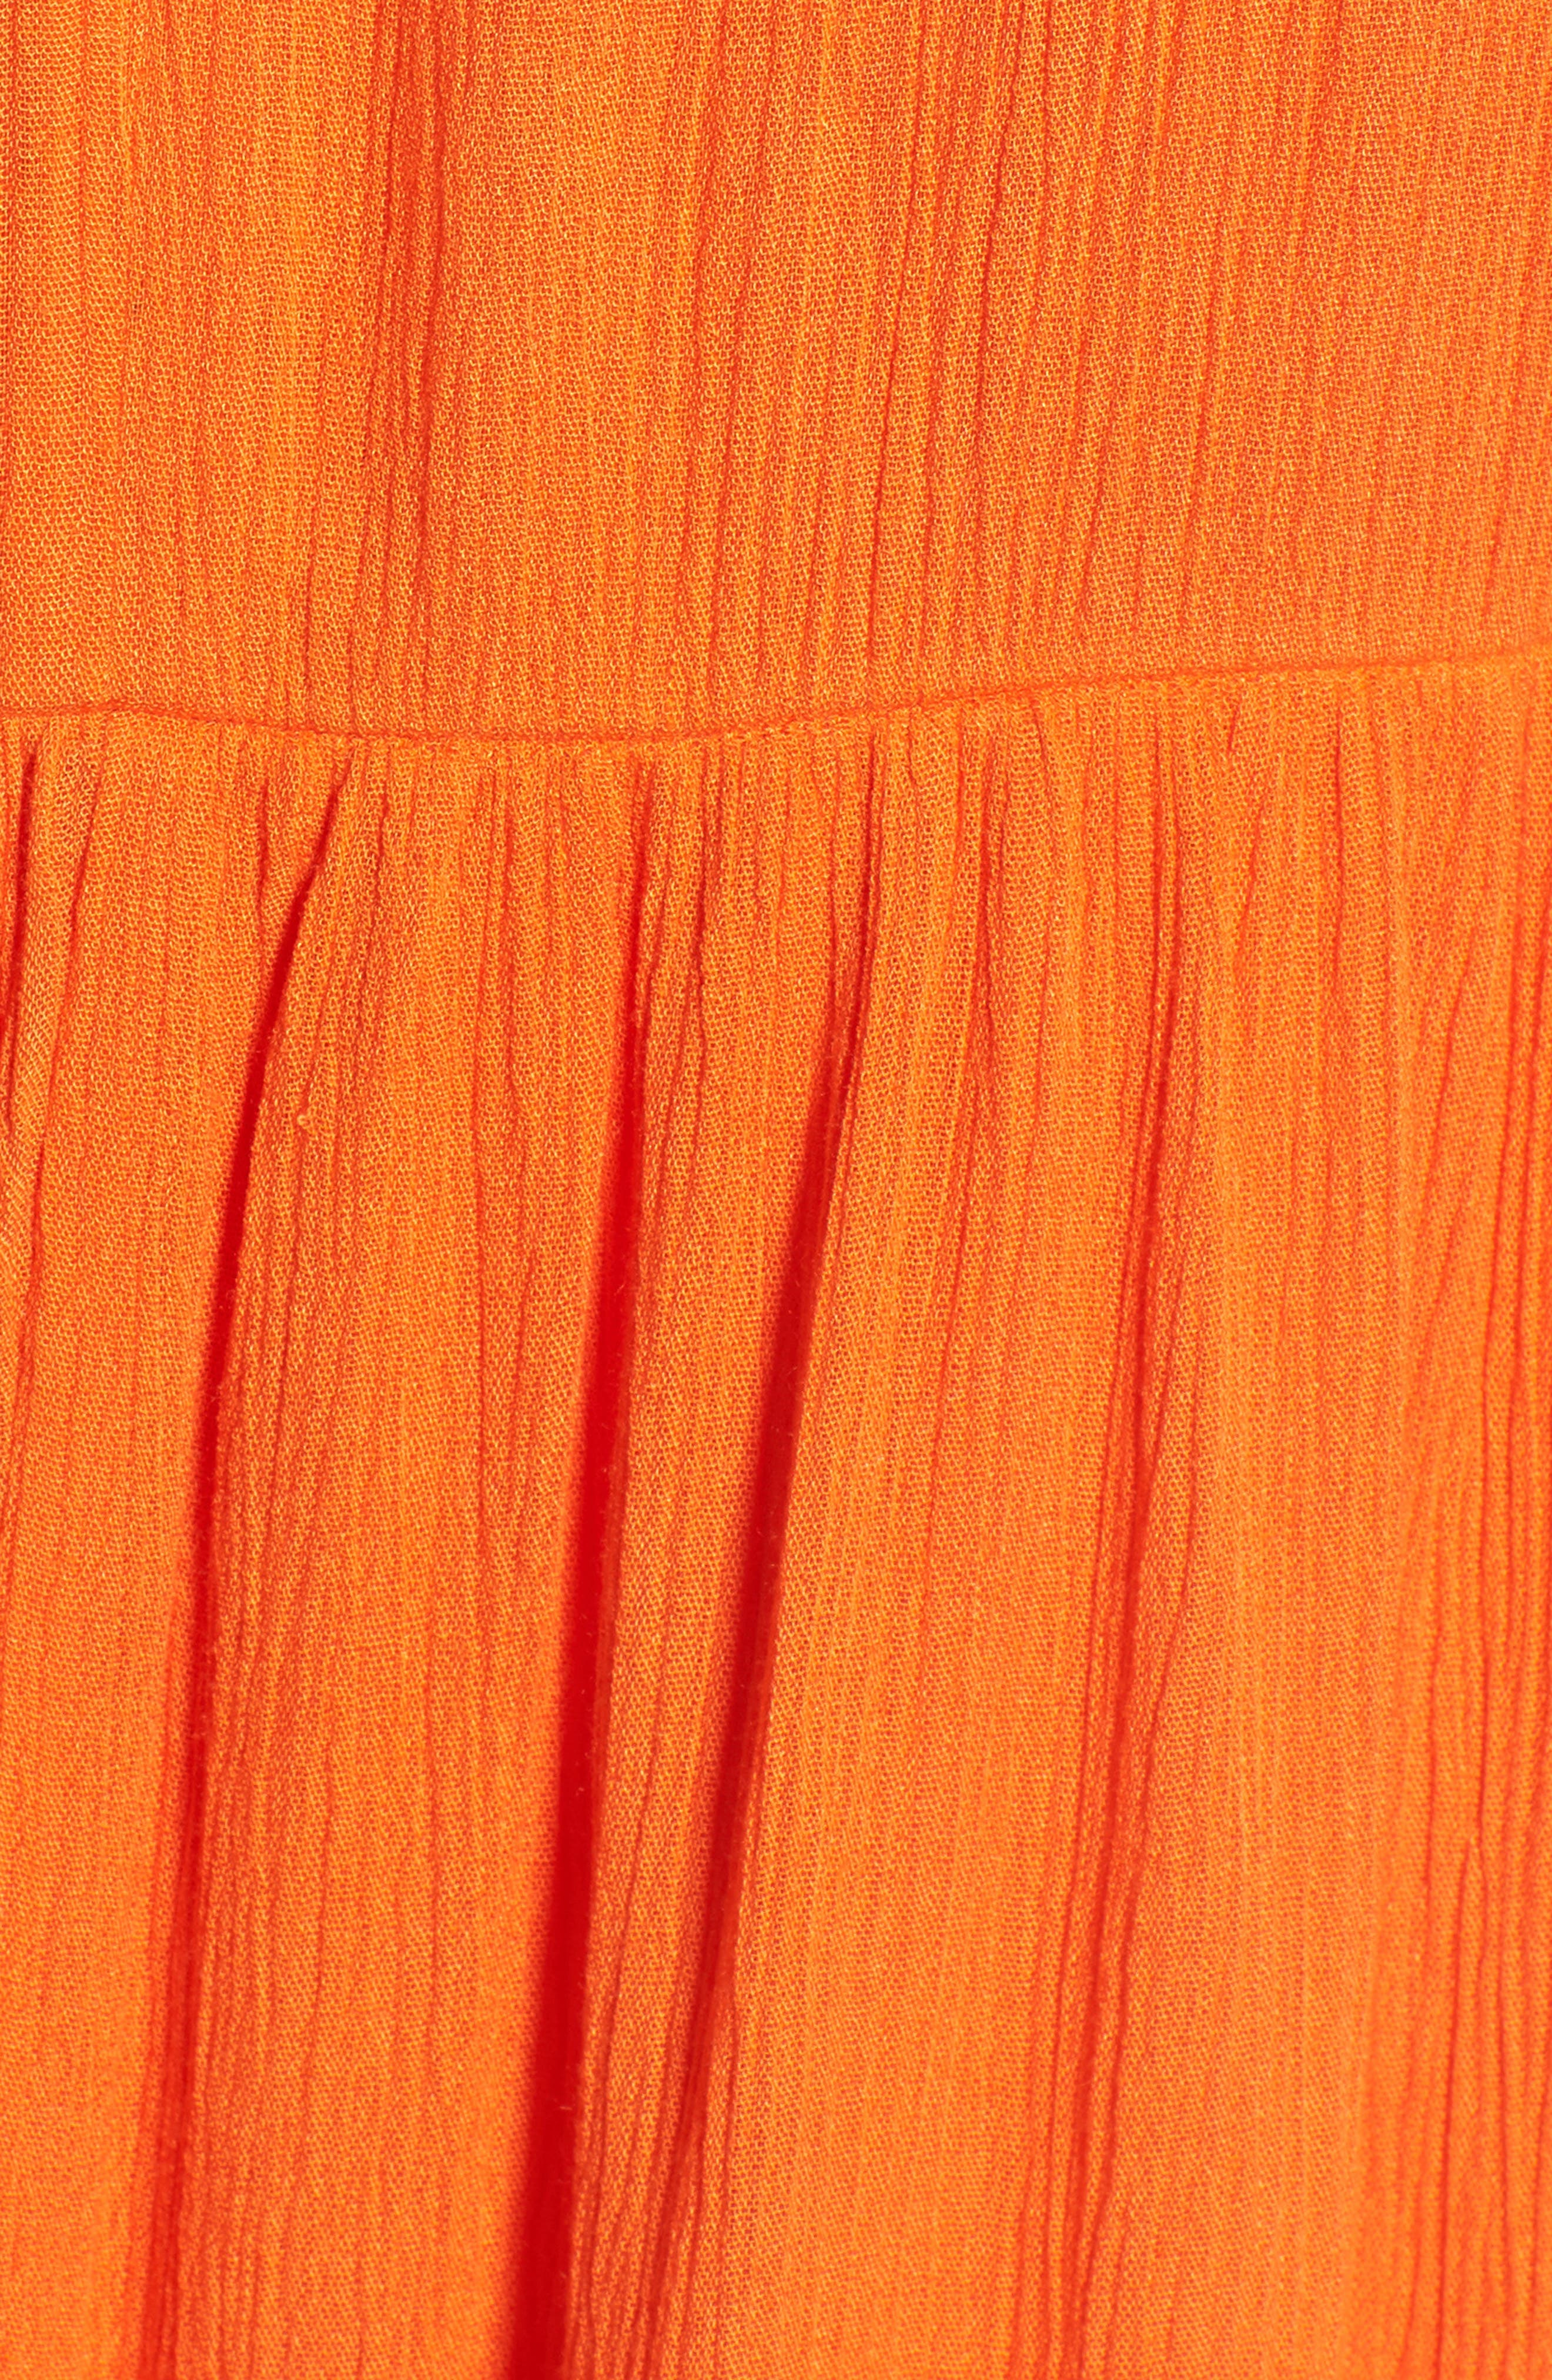 Embroidered Dress,                             Alternate thumbnail 6, color,                             Orange